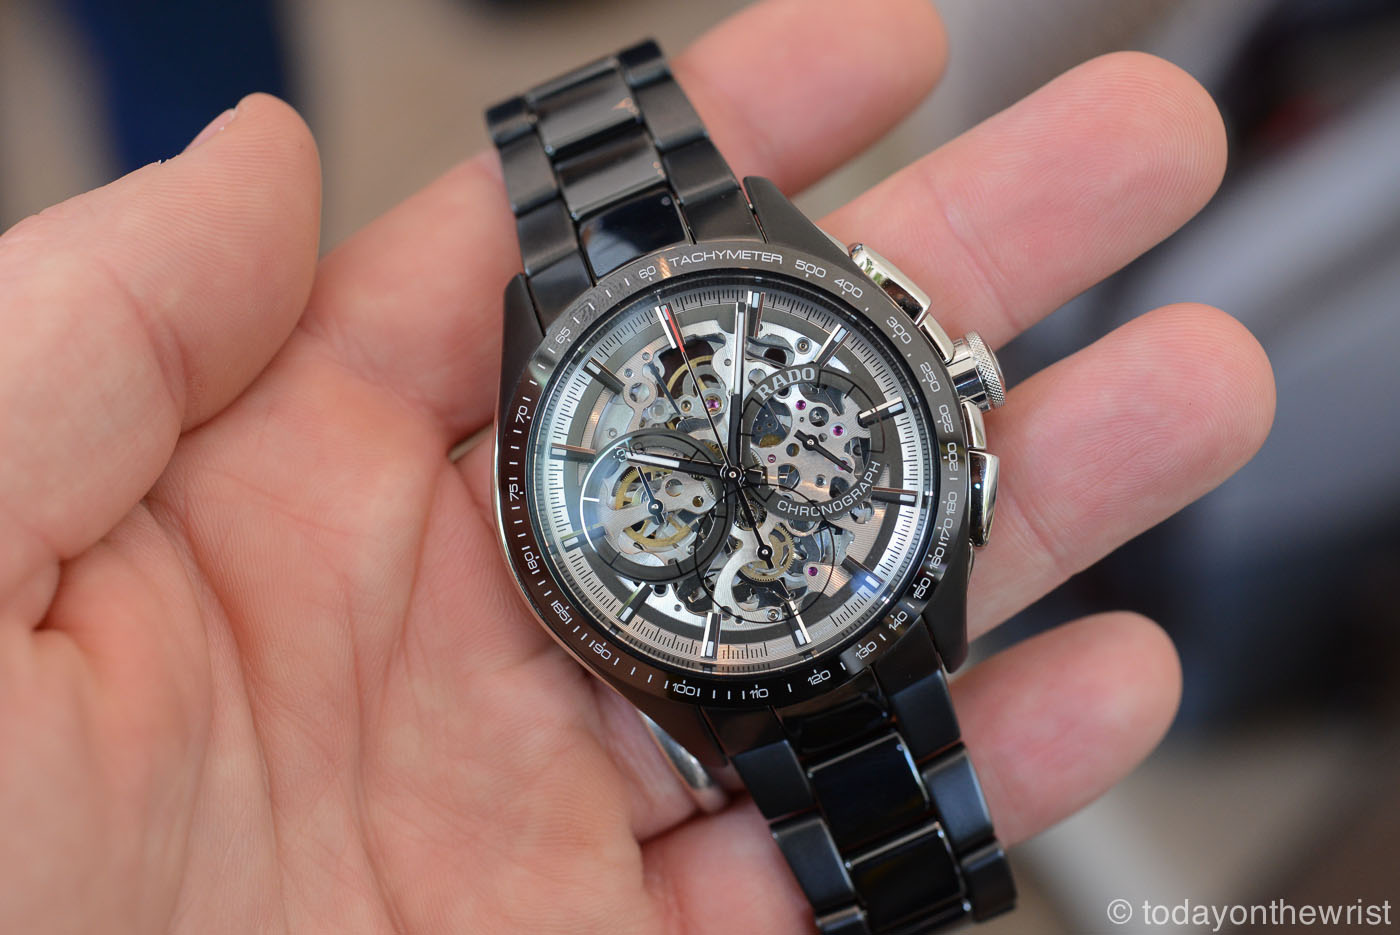 Rado HyperChrome Skeleton Automatic Chronograph Limited Edition